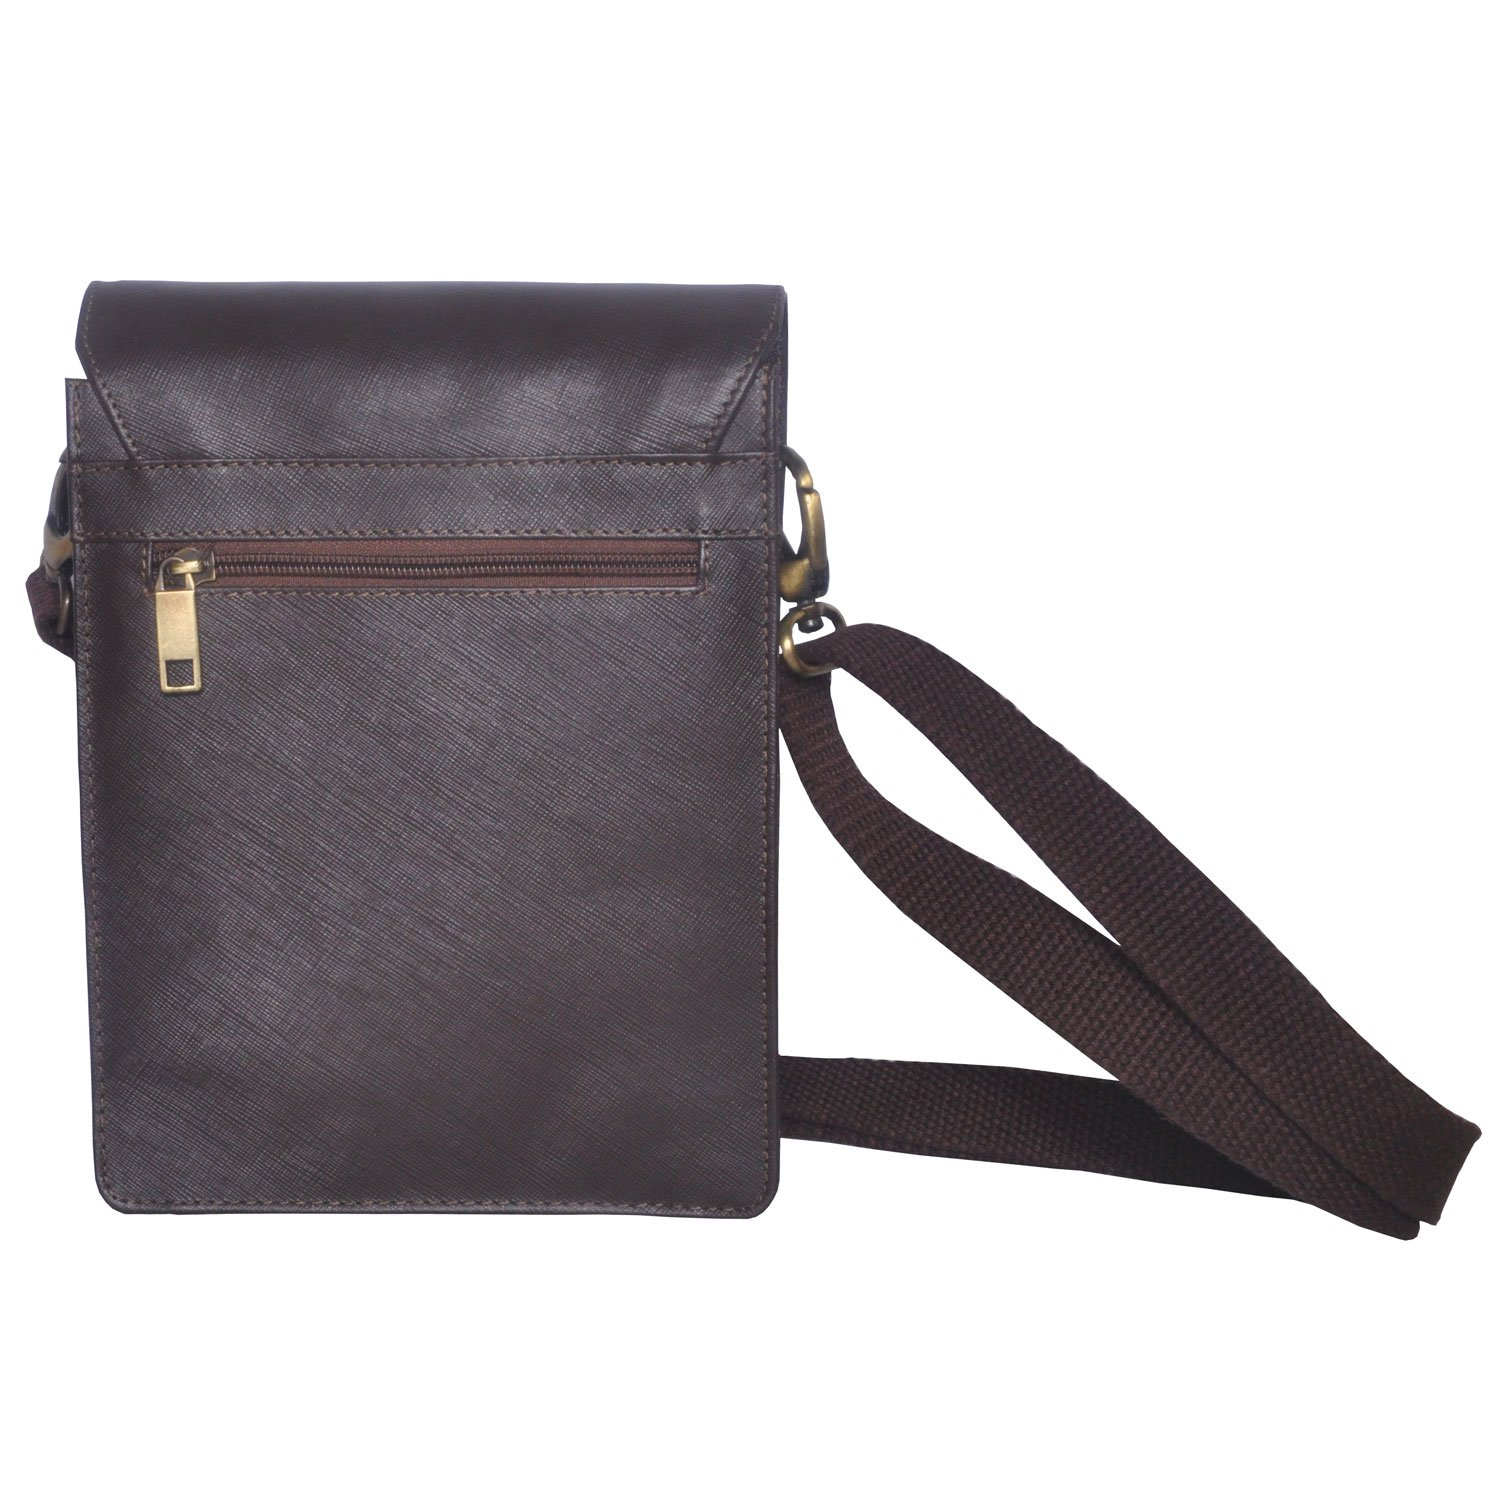 Buy Tamanna Men   Women Normal Brown Genuine Leather Sling Bag Online at  Low Prices in India - Amazon.in 1701e9e9da1c6